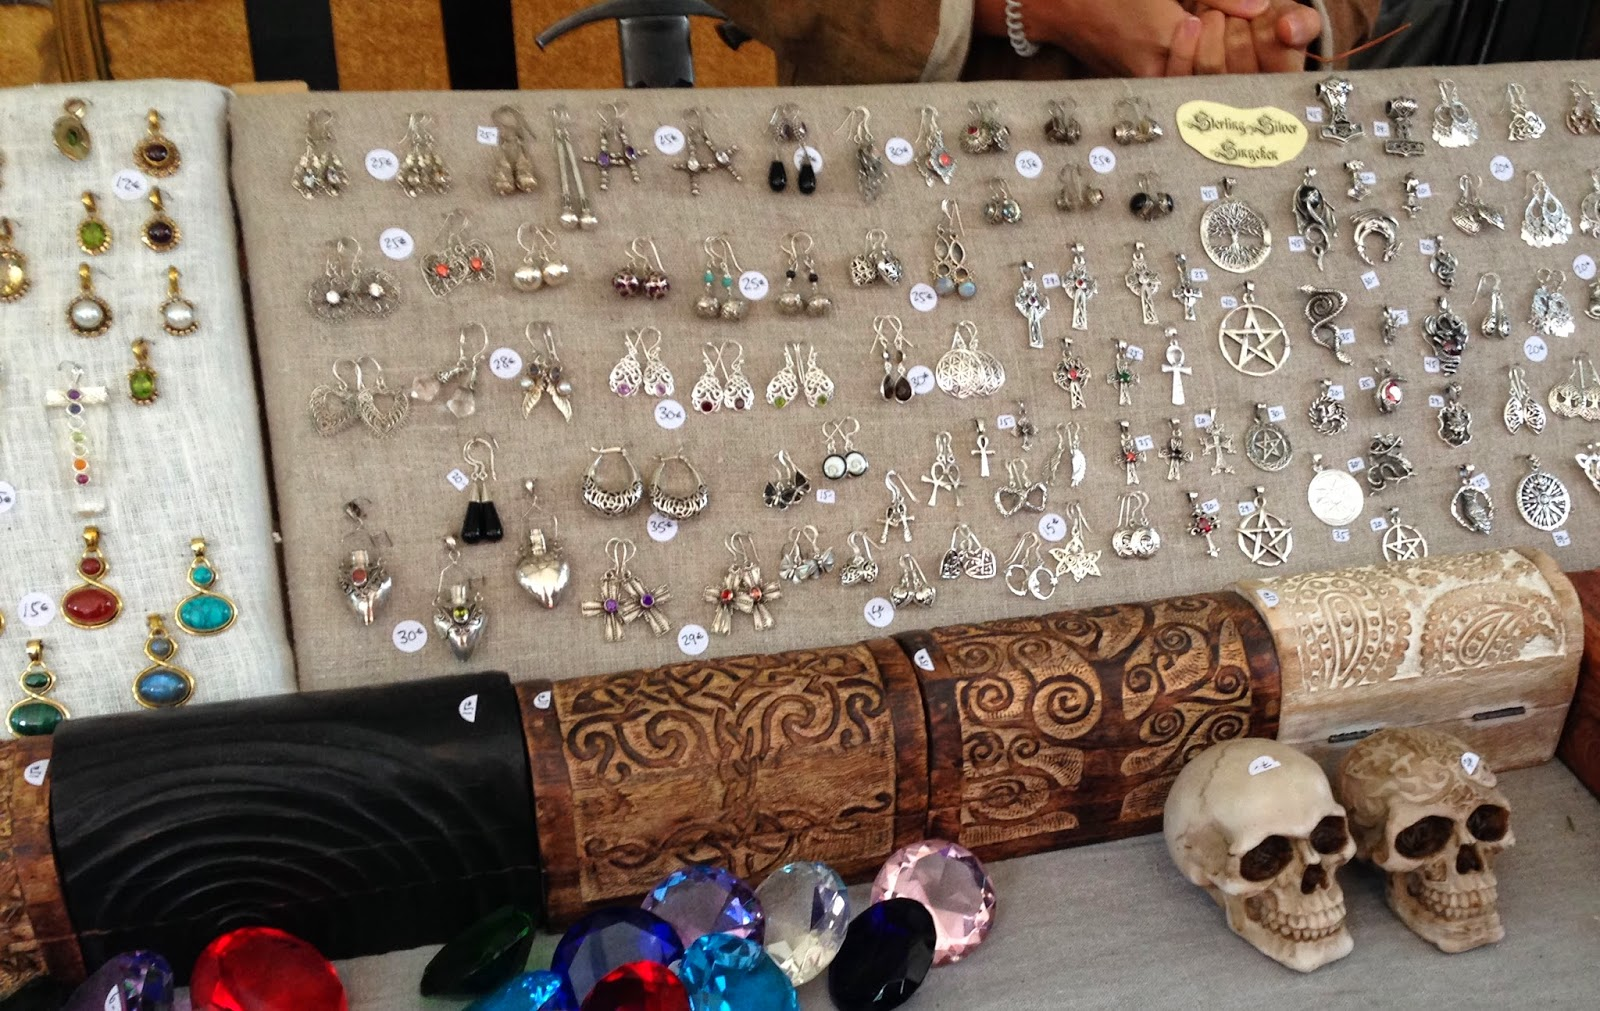 A picture of medieval jewellery, boxes, diamonds, skulls.